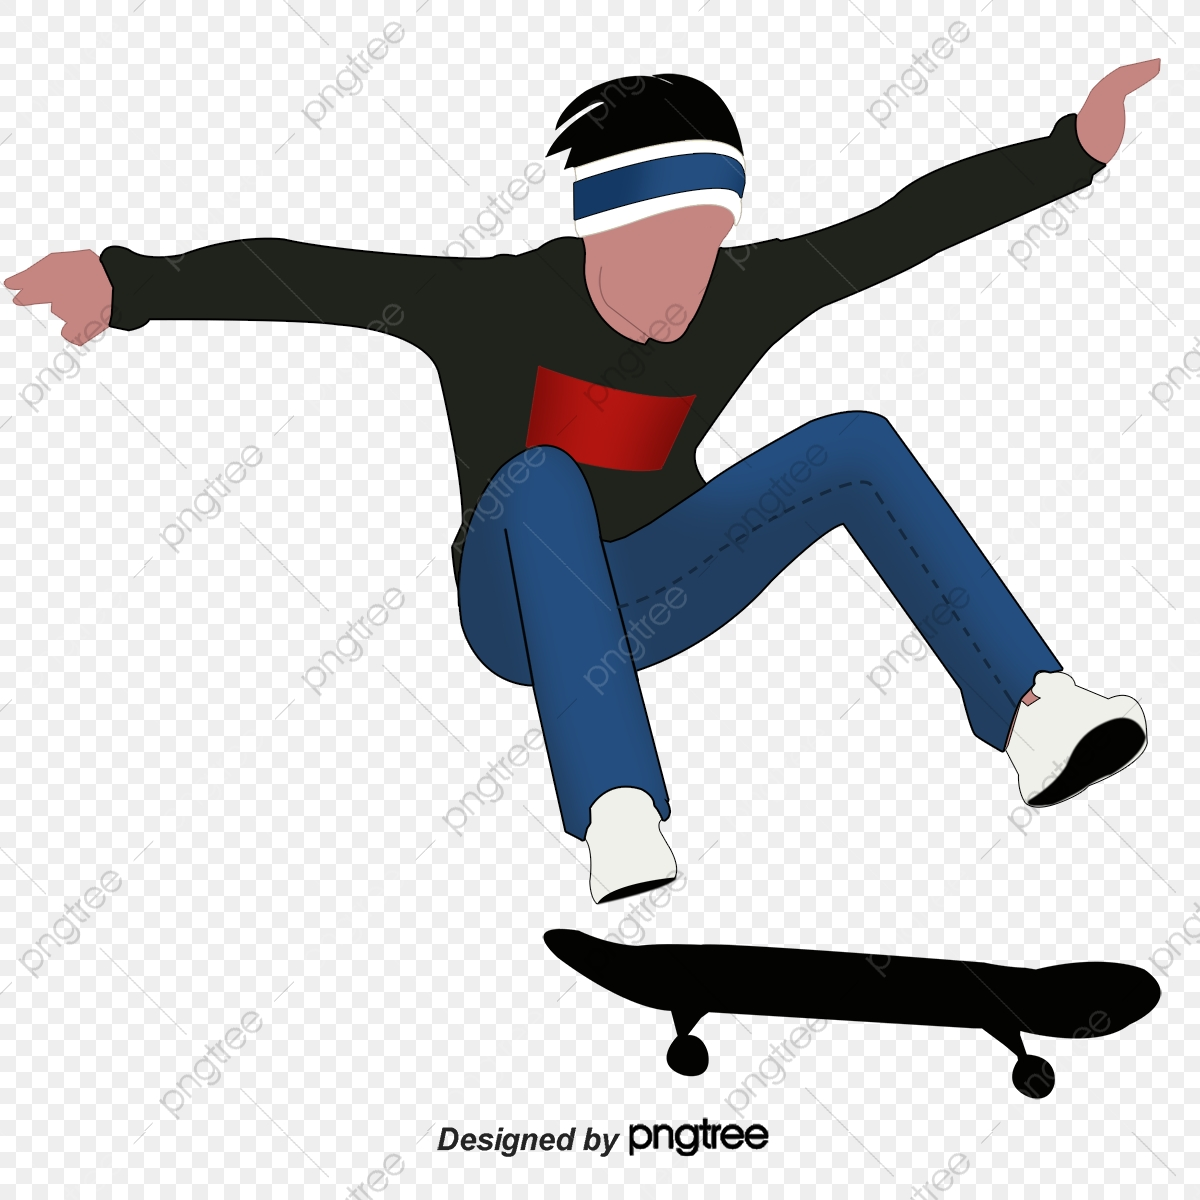 Cartoon Skiing Cartoon Clipart Snowboarding Skiing Png Transparent Clipart Image And Psd File For Free Download